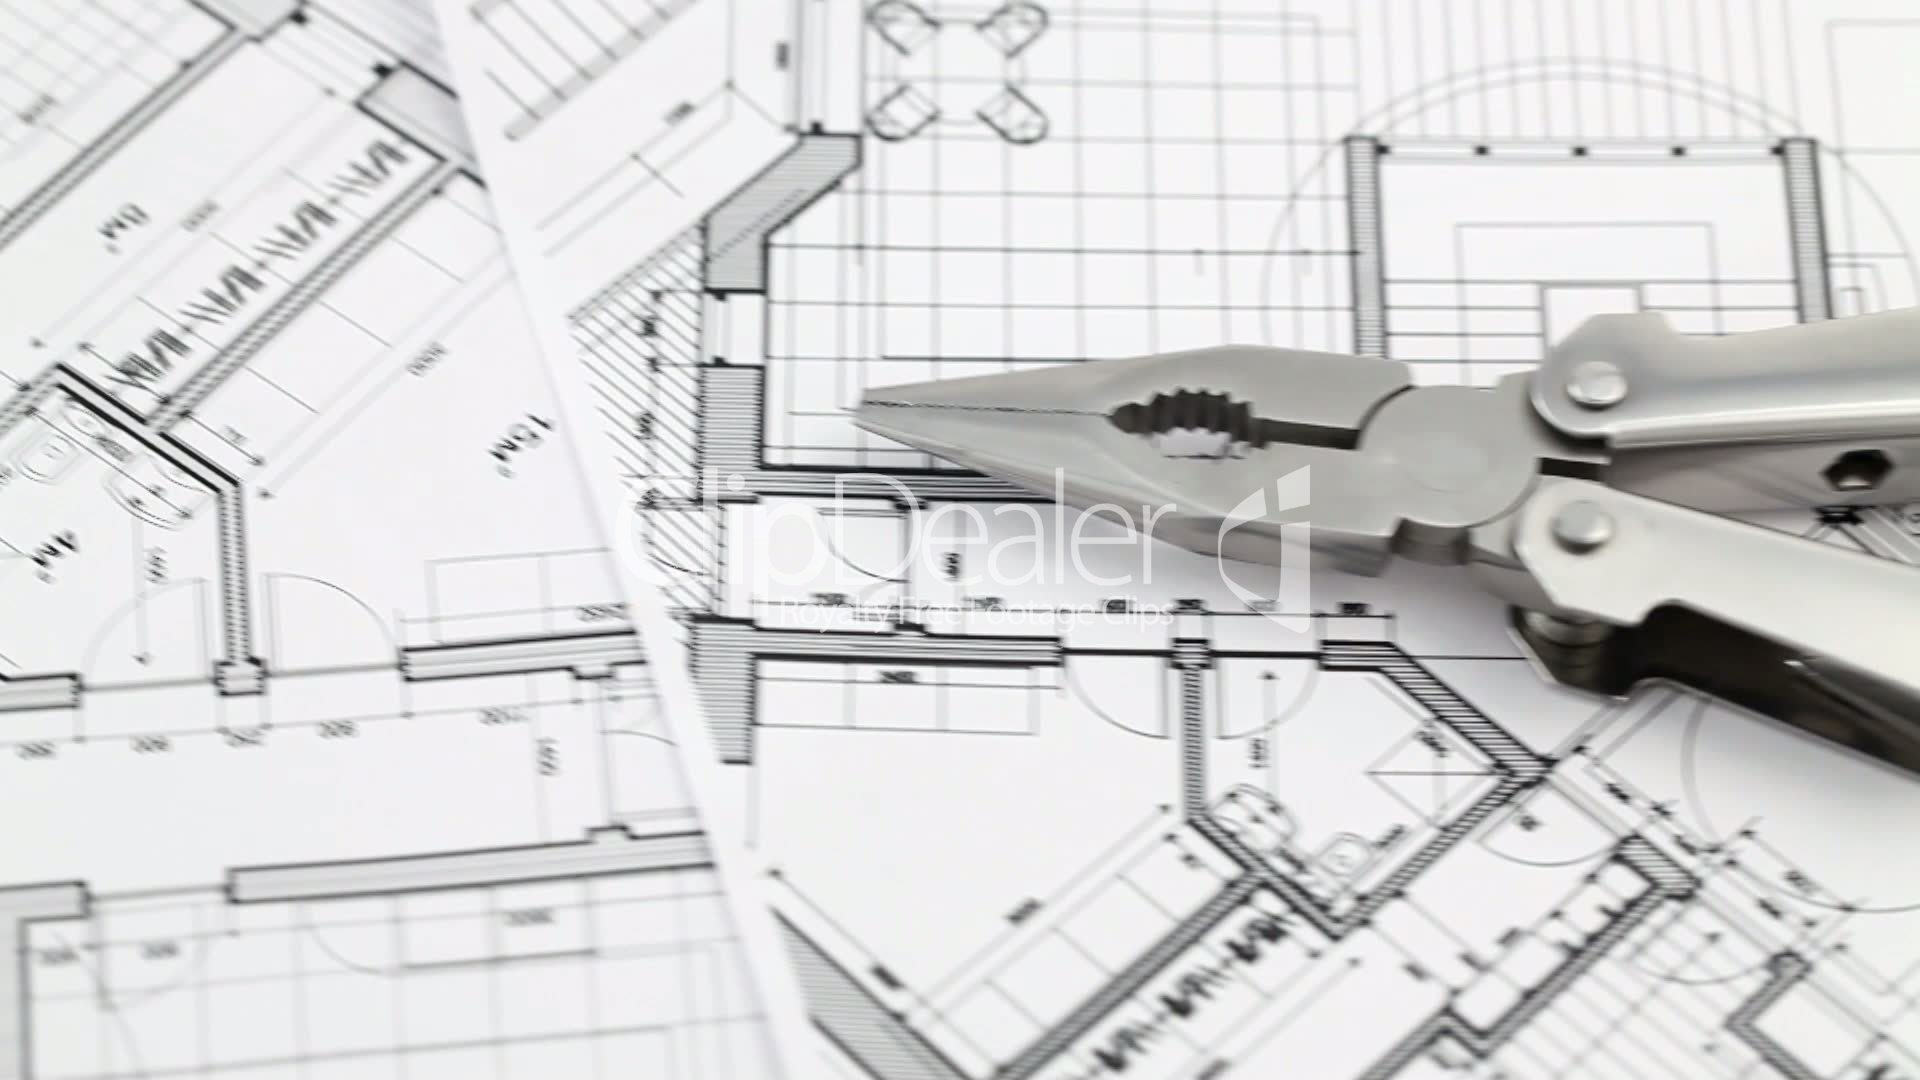 architectural engineering blueprints. Clips. Pliers And Architectural Blueprints Engineering